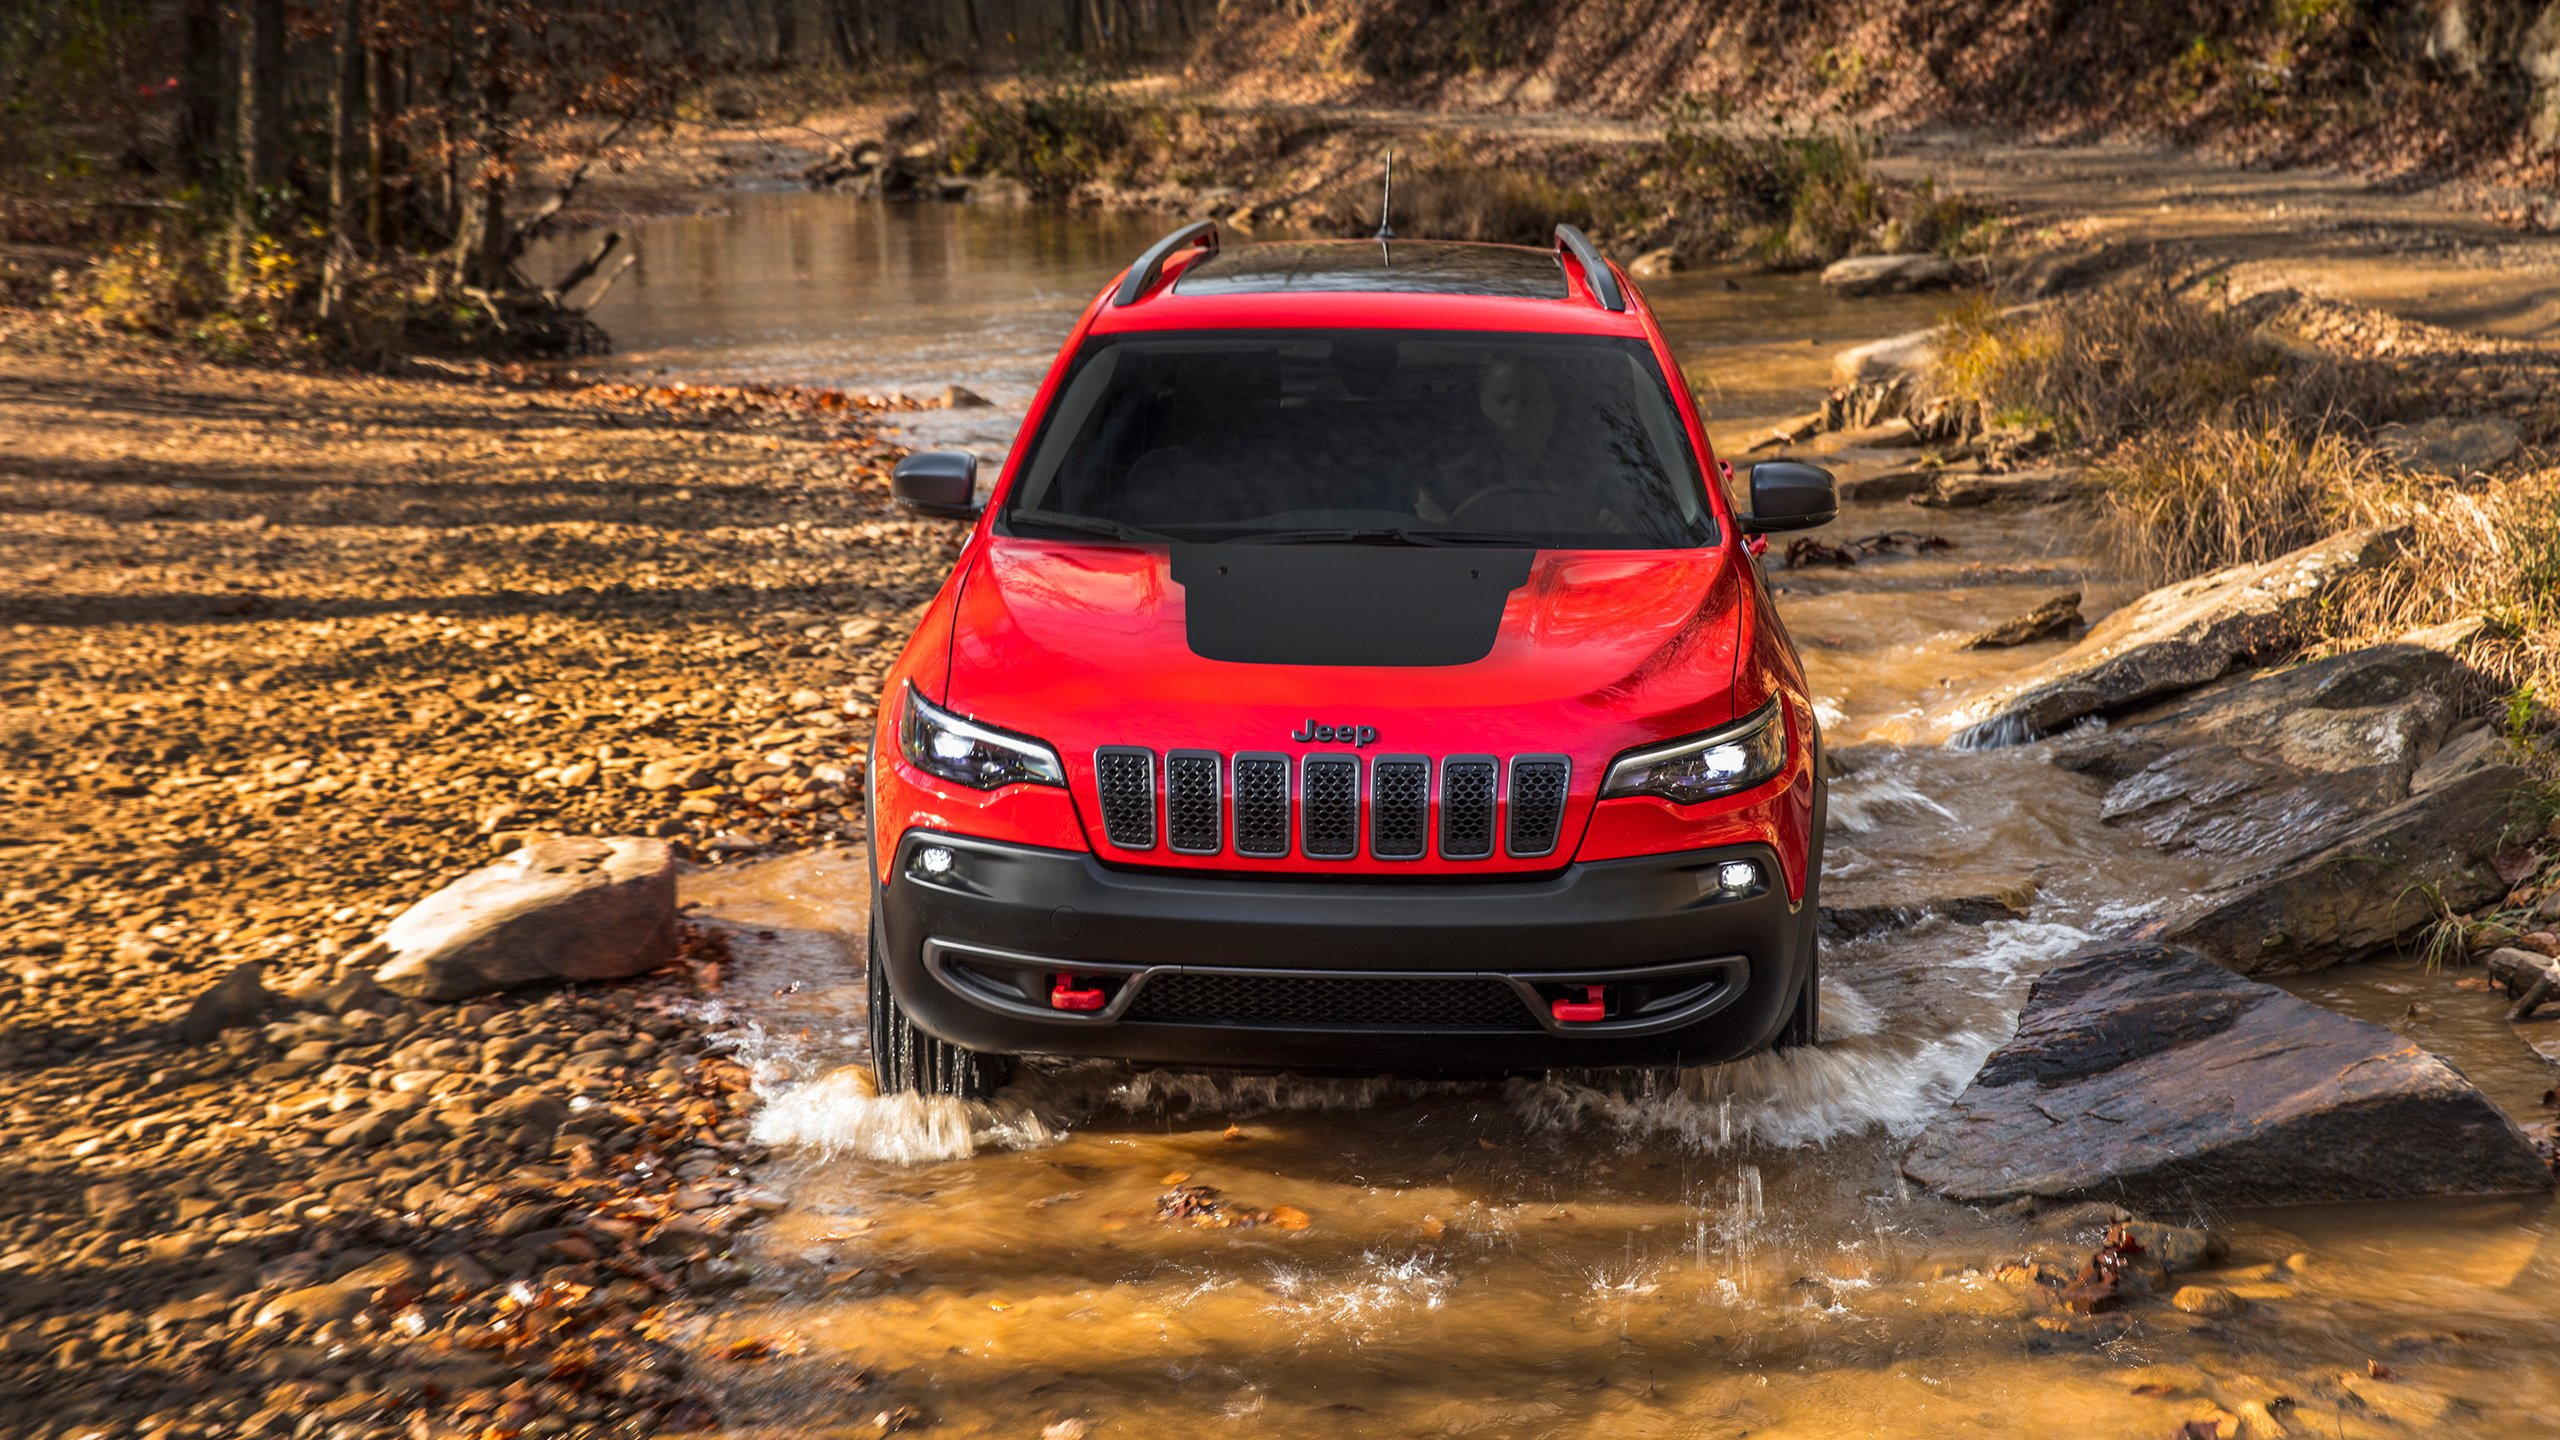 2019 Jeep Cherokee Trailhawk 3 Wallpaper HD Car Wallpapers ID 2560x1440